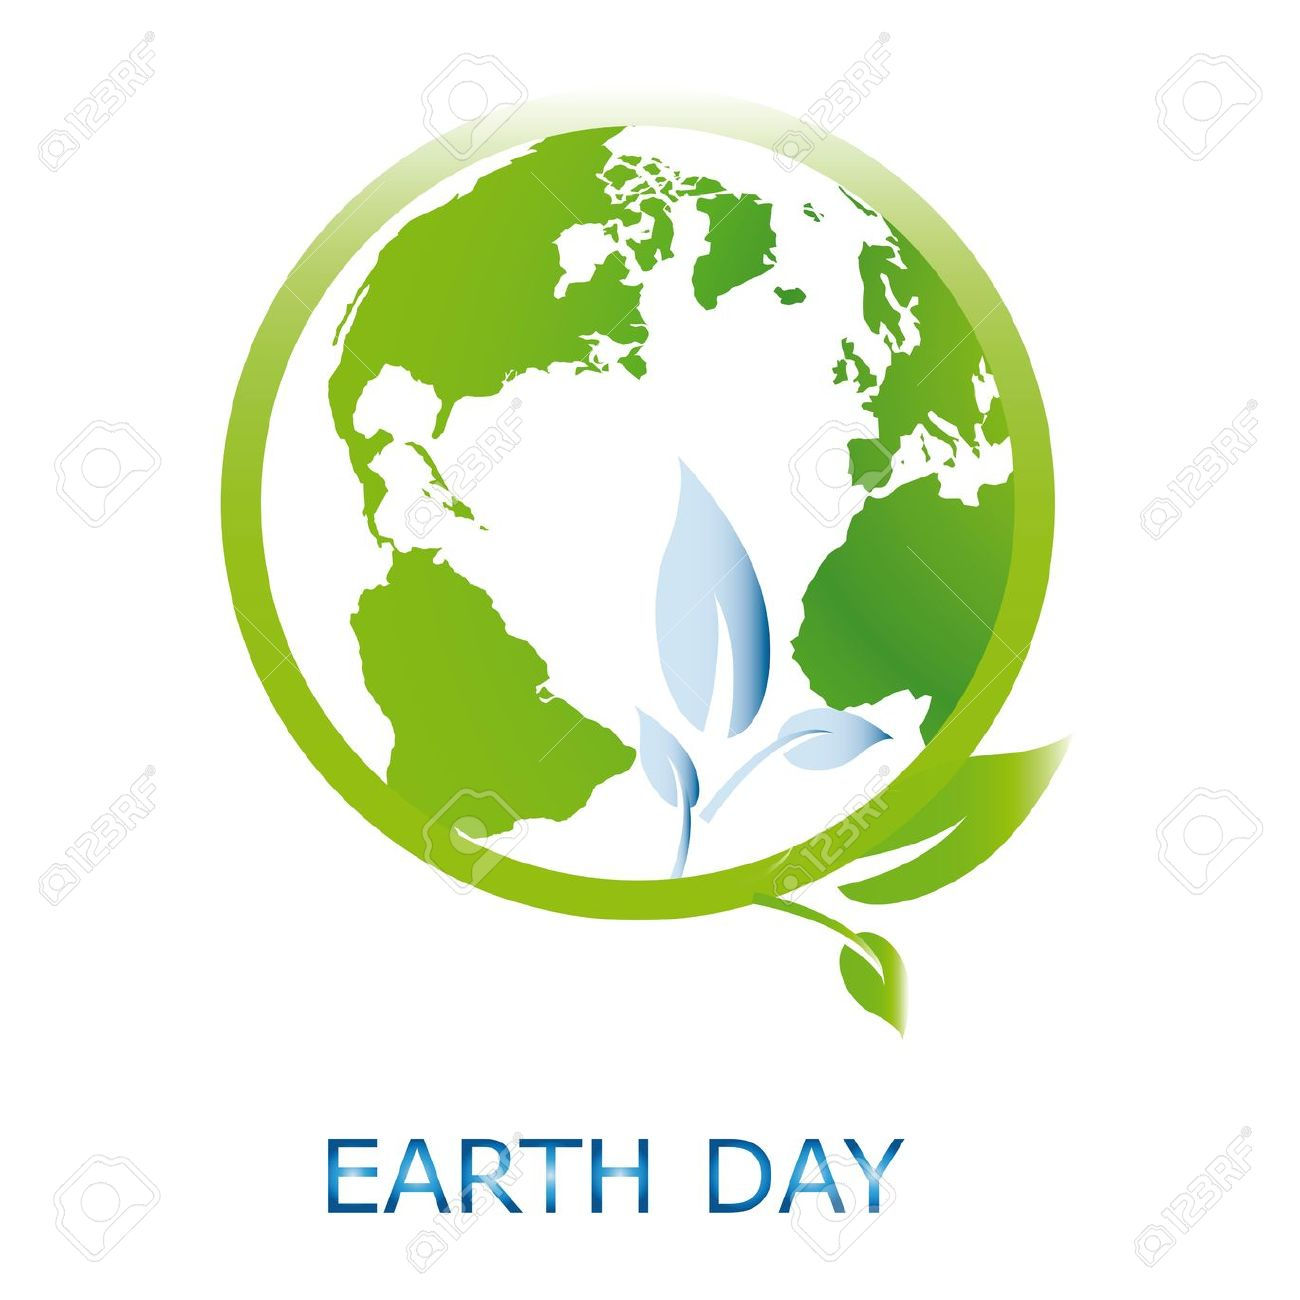 Le jour clipart svg library Planet Symbol On Earth Day Royalty Free Cliparts, Vectors, And ... svg library